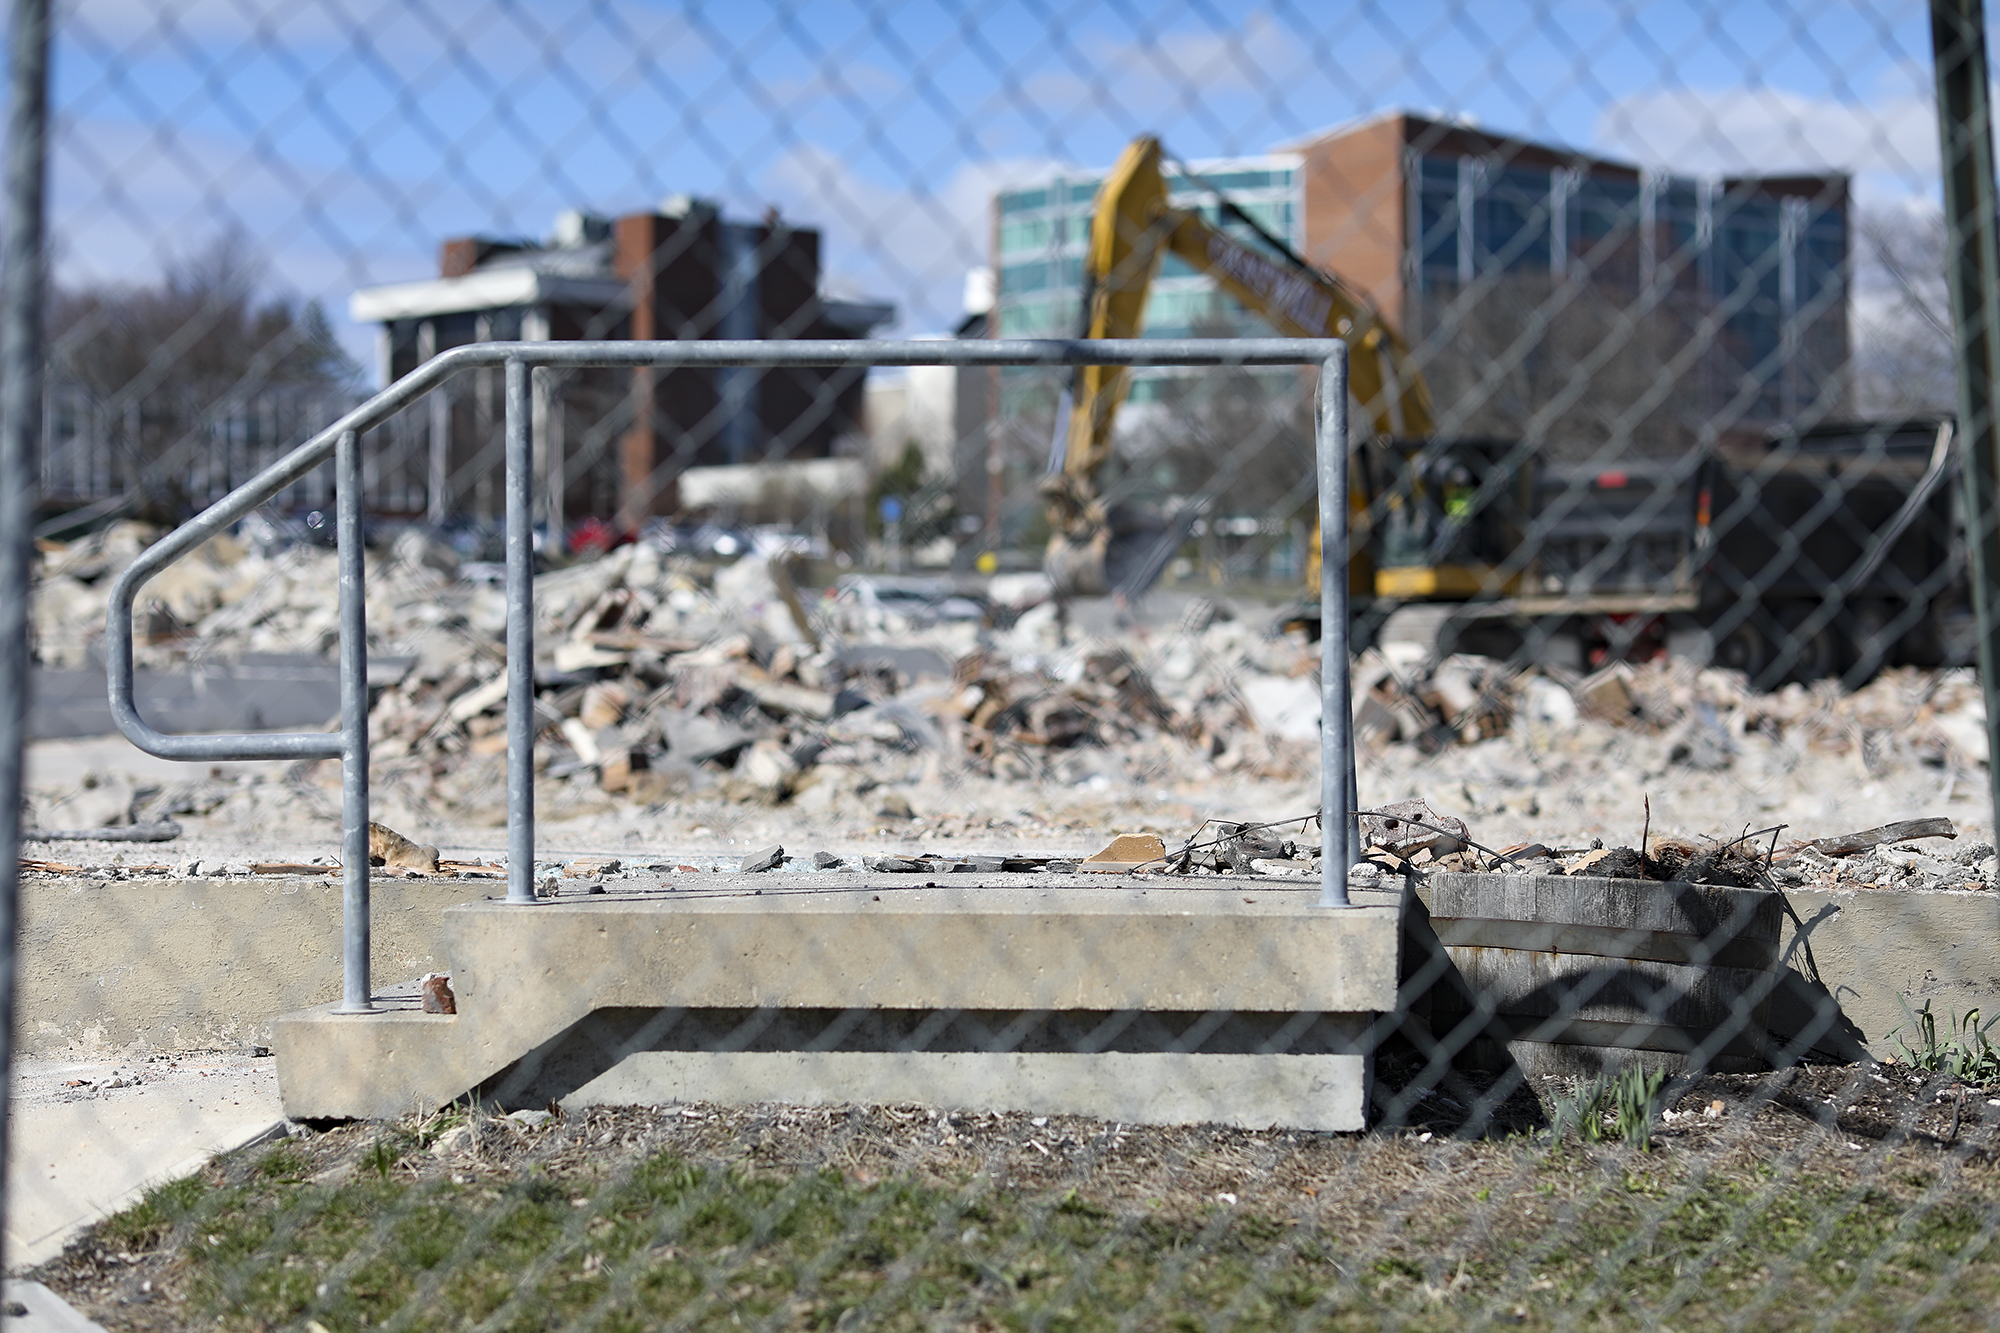 A short staircase to 25 Bedford Street remains intact at the demolition site.